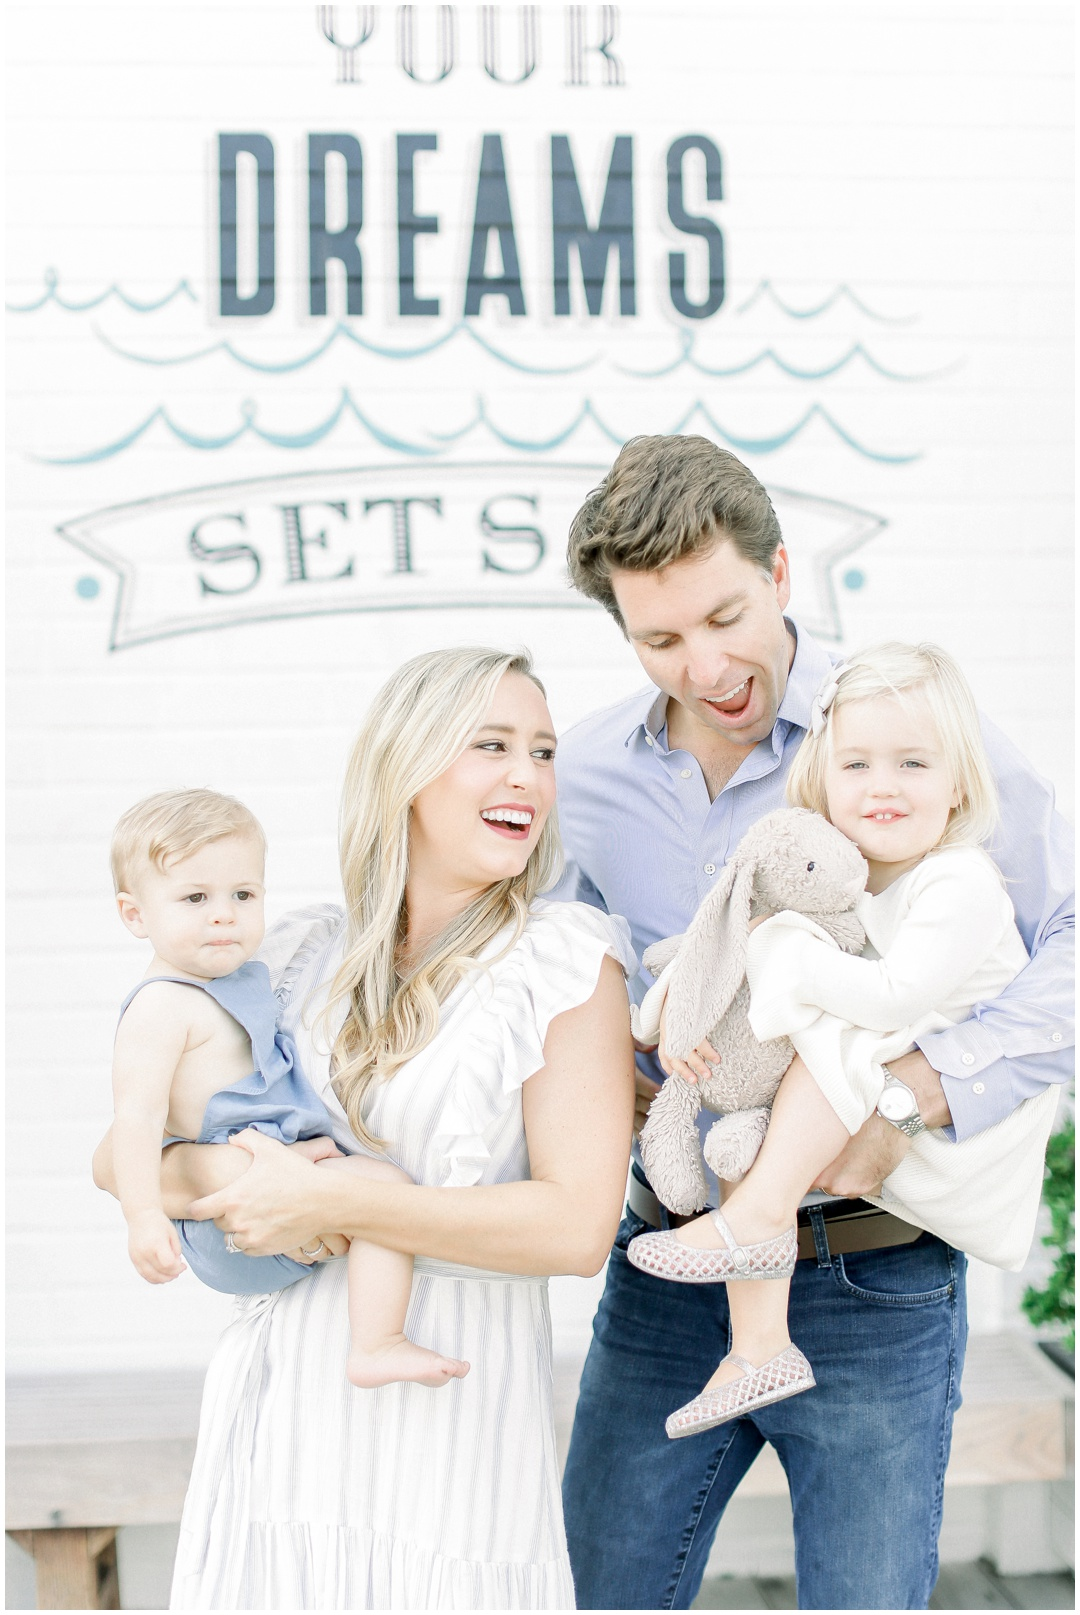 Lido_Marina_Village_Session_Photographer_Newport_Beach_Family_Photographer_Newport_Beach_Newborn_Photographer_Orange_County_Family_Photographer_Cori_Kleckner_Photography_Huntington_Beach_Photographer_Lara_Langford_Family_Session_2644.jpg